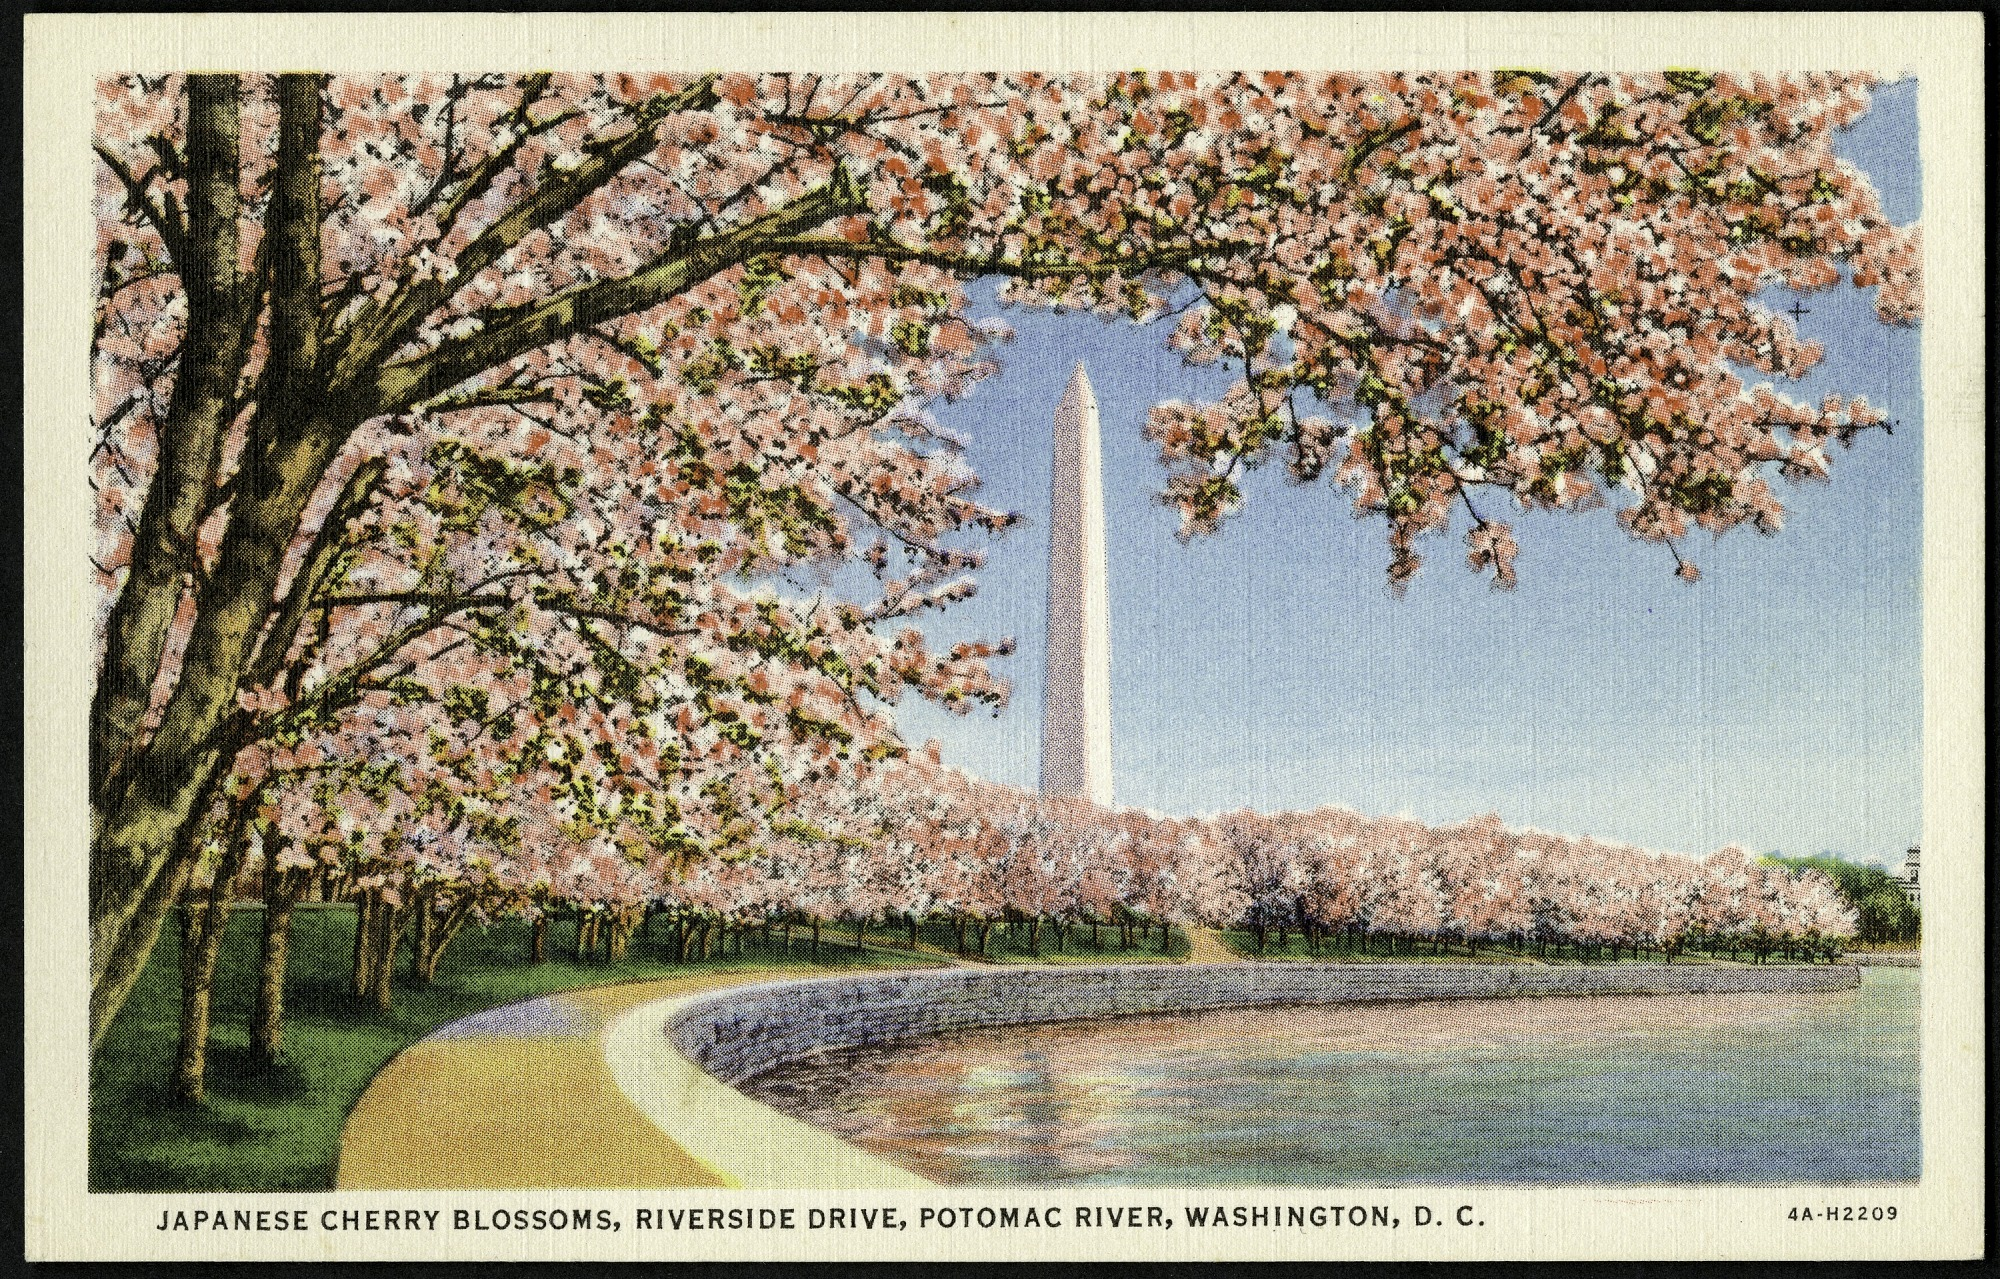 Postcard of Japanese Cherry Blossoms on Riverside Drive